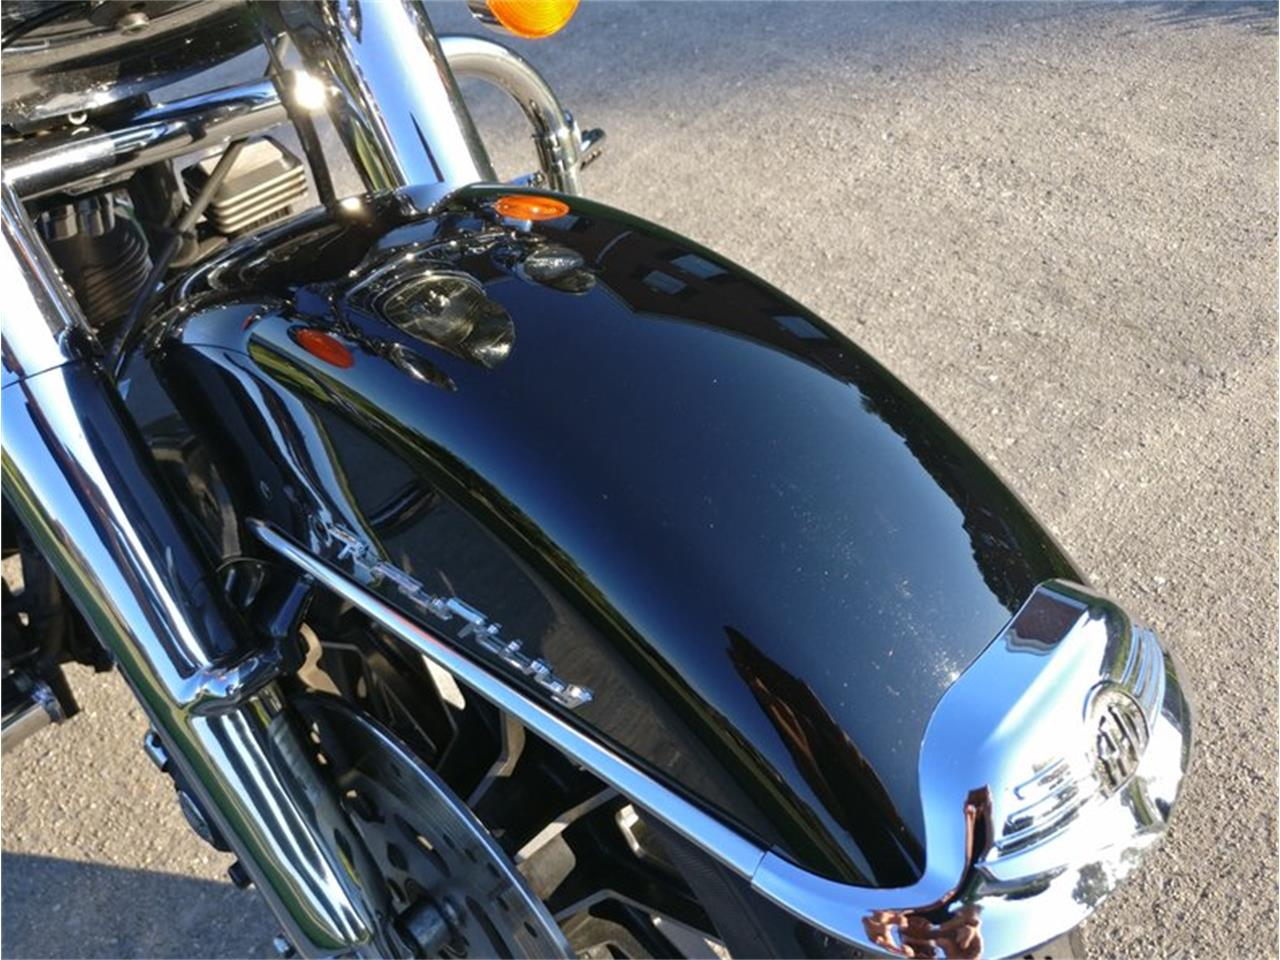 1998 Harley-Davidson Road King for sale in Cookeville, TN – photo 25